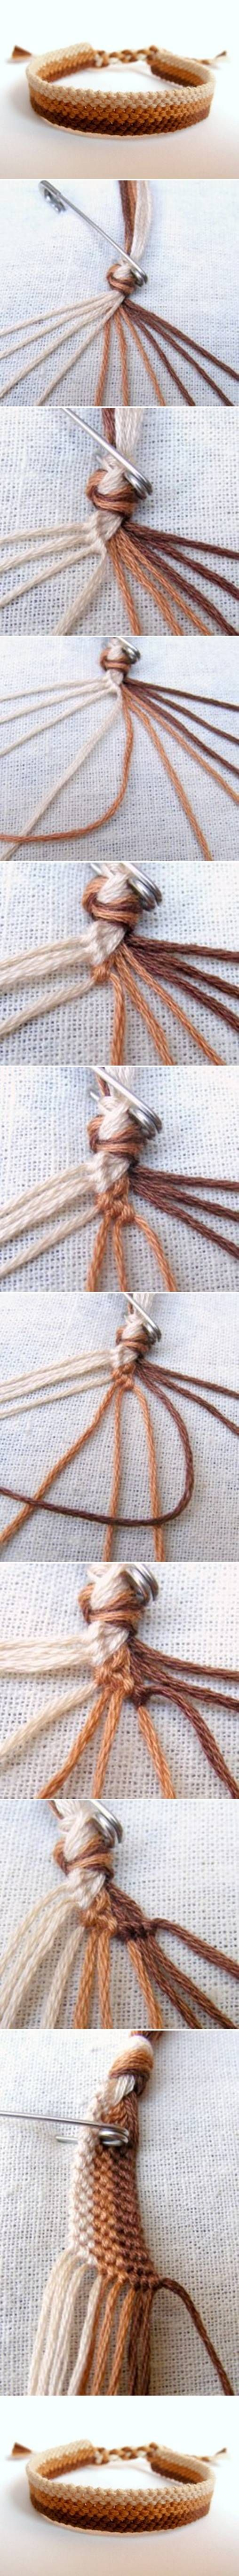 DIY Easy Weave Bracelet DIY Projects | UsefulDIY.com